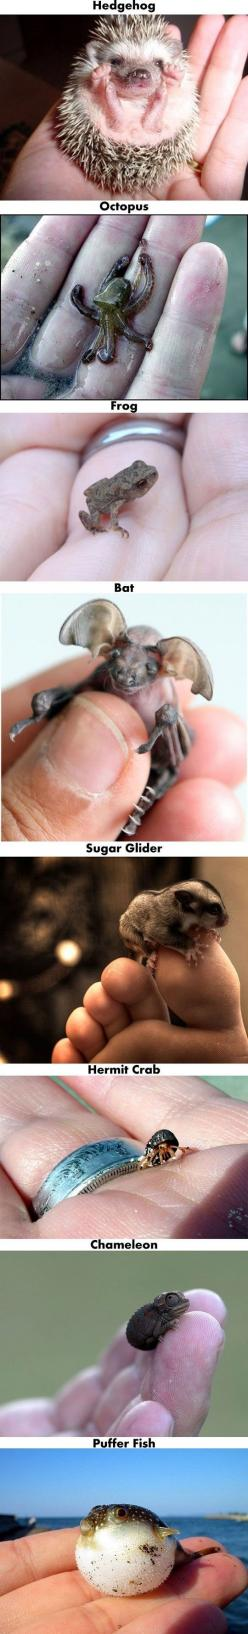 A Few Of My Favorite Baby Animals: Babies, Hedgehog, Cute Baby Animals, Cute Babies, Animal Babies, Tiny Animals